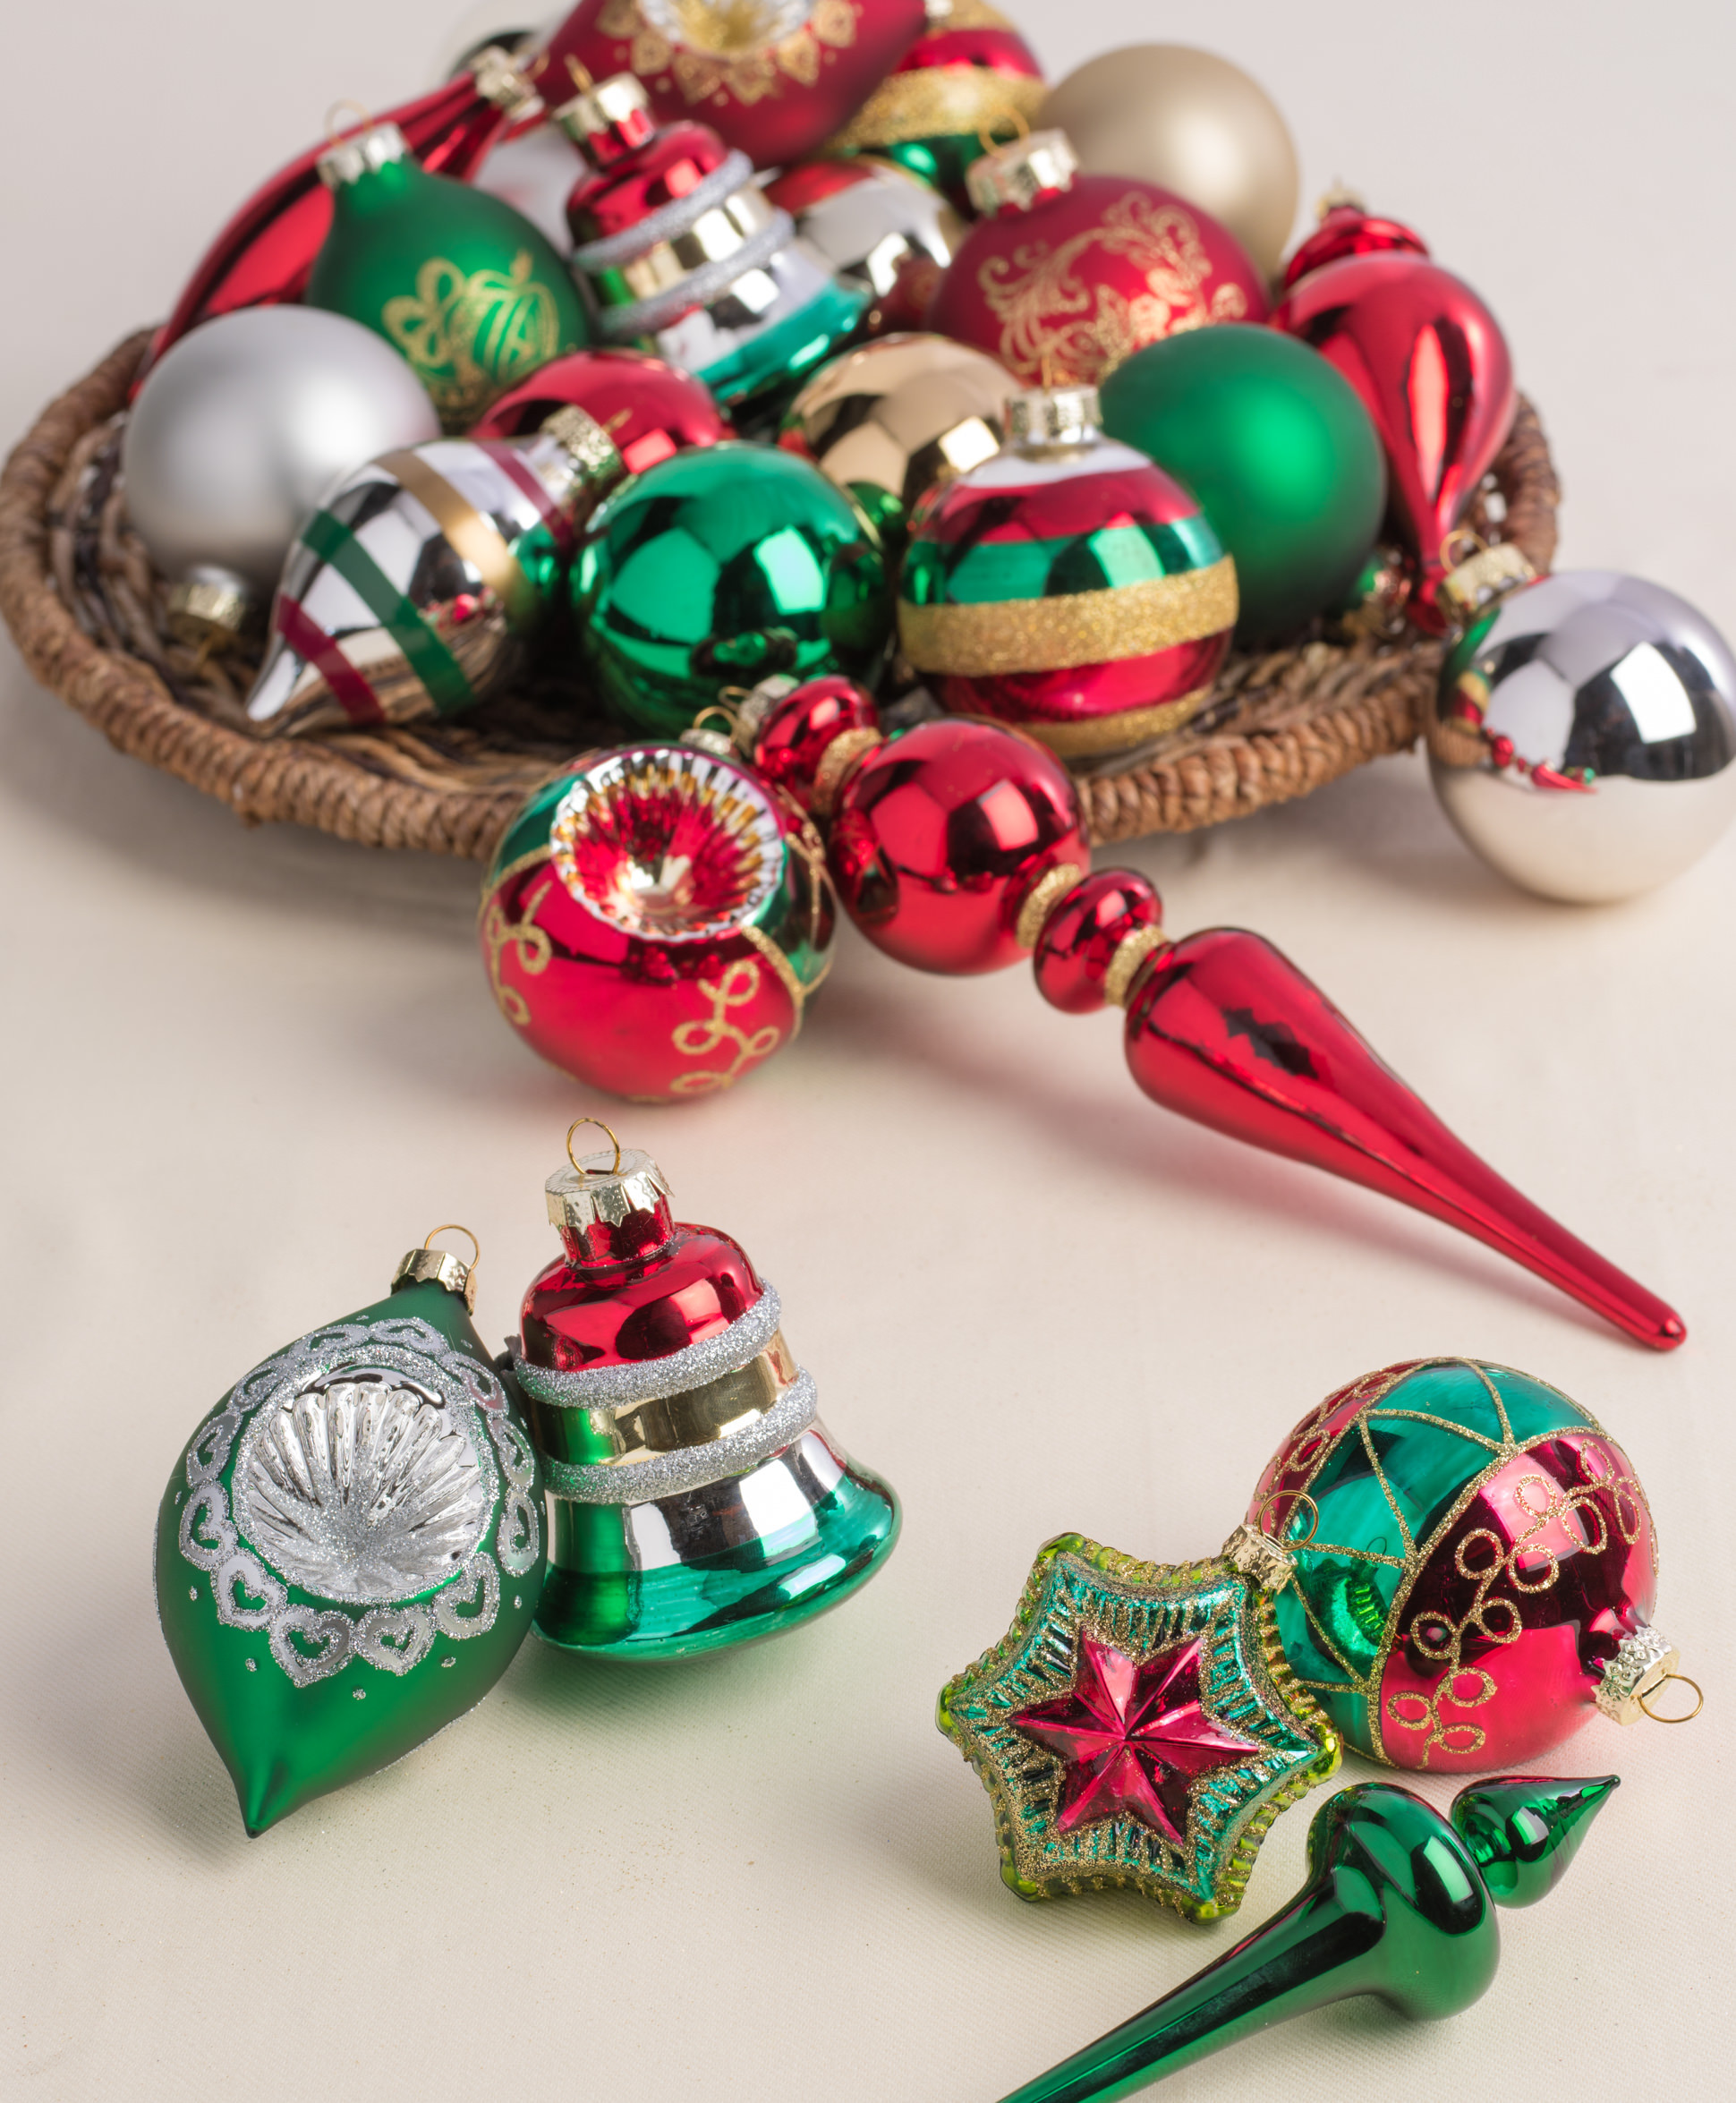 Christmas ornament Sets Best Of Merry & Bright ornament Collection Of Fresh 41 Models Christmas ornament Sets